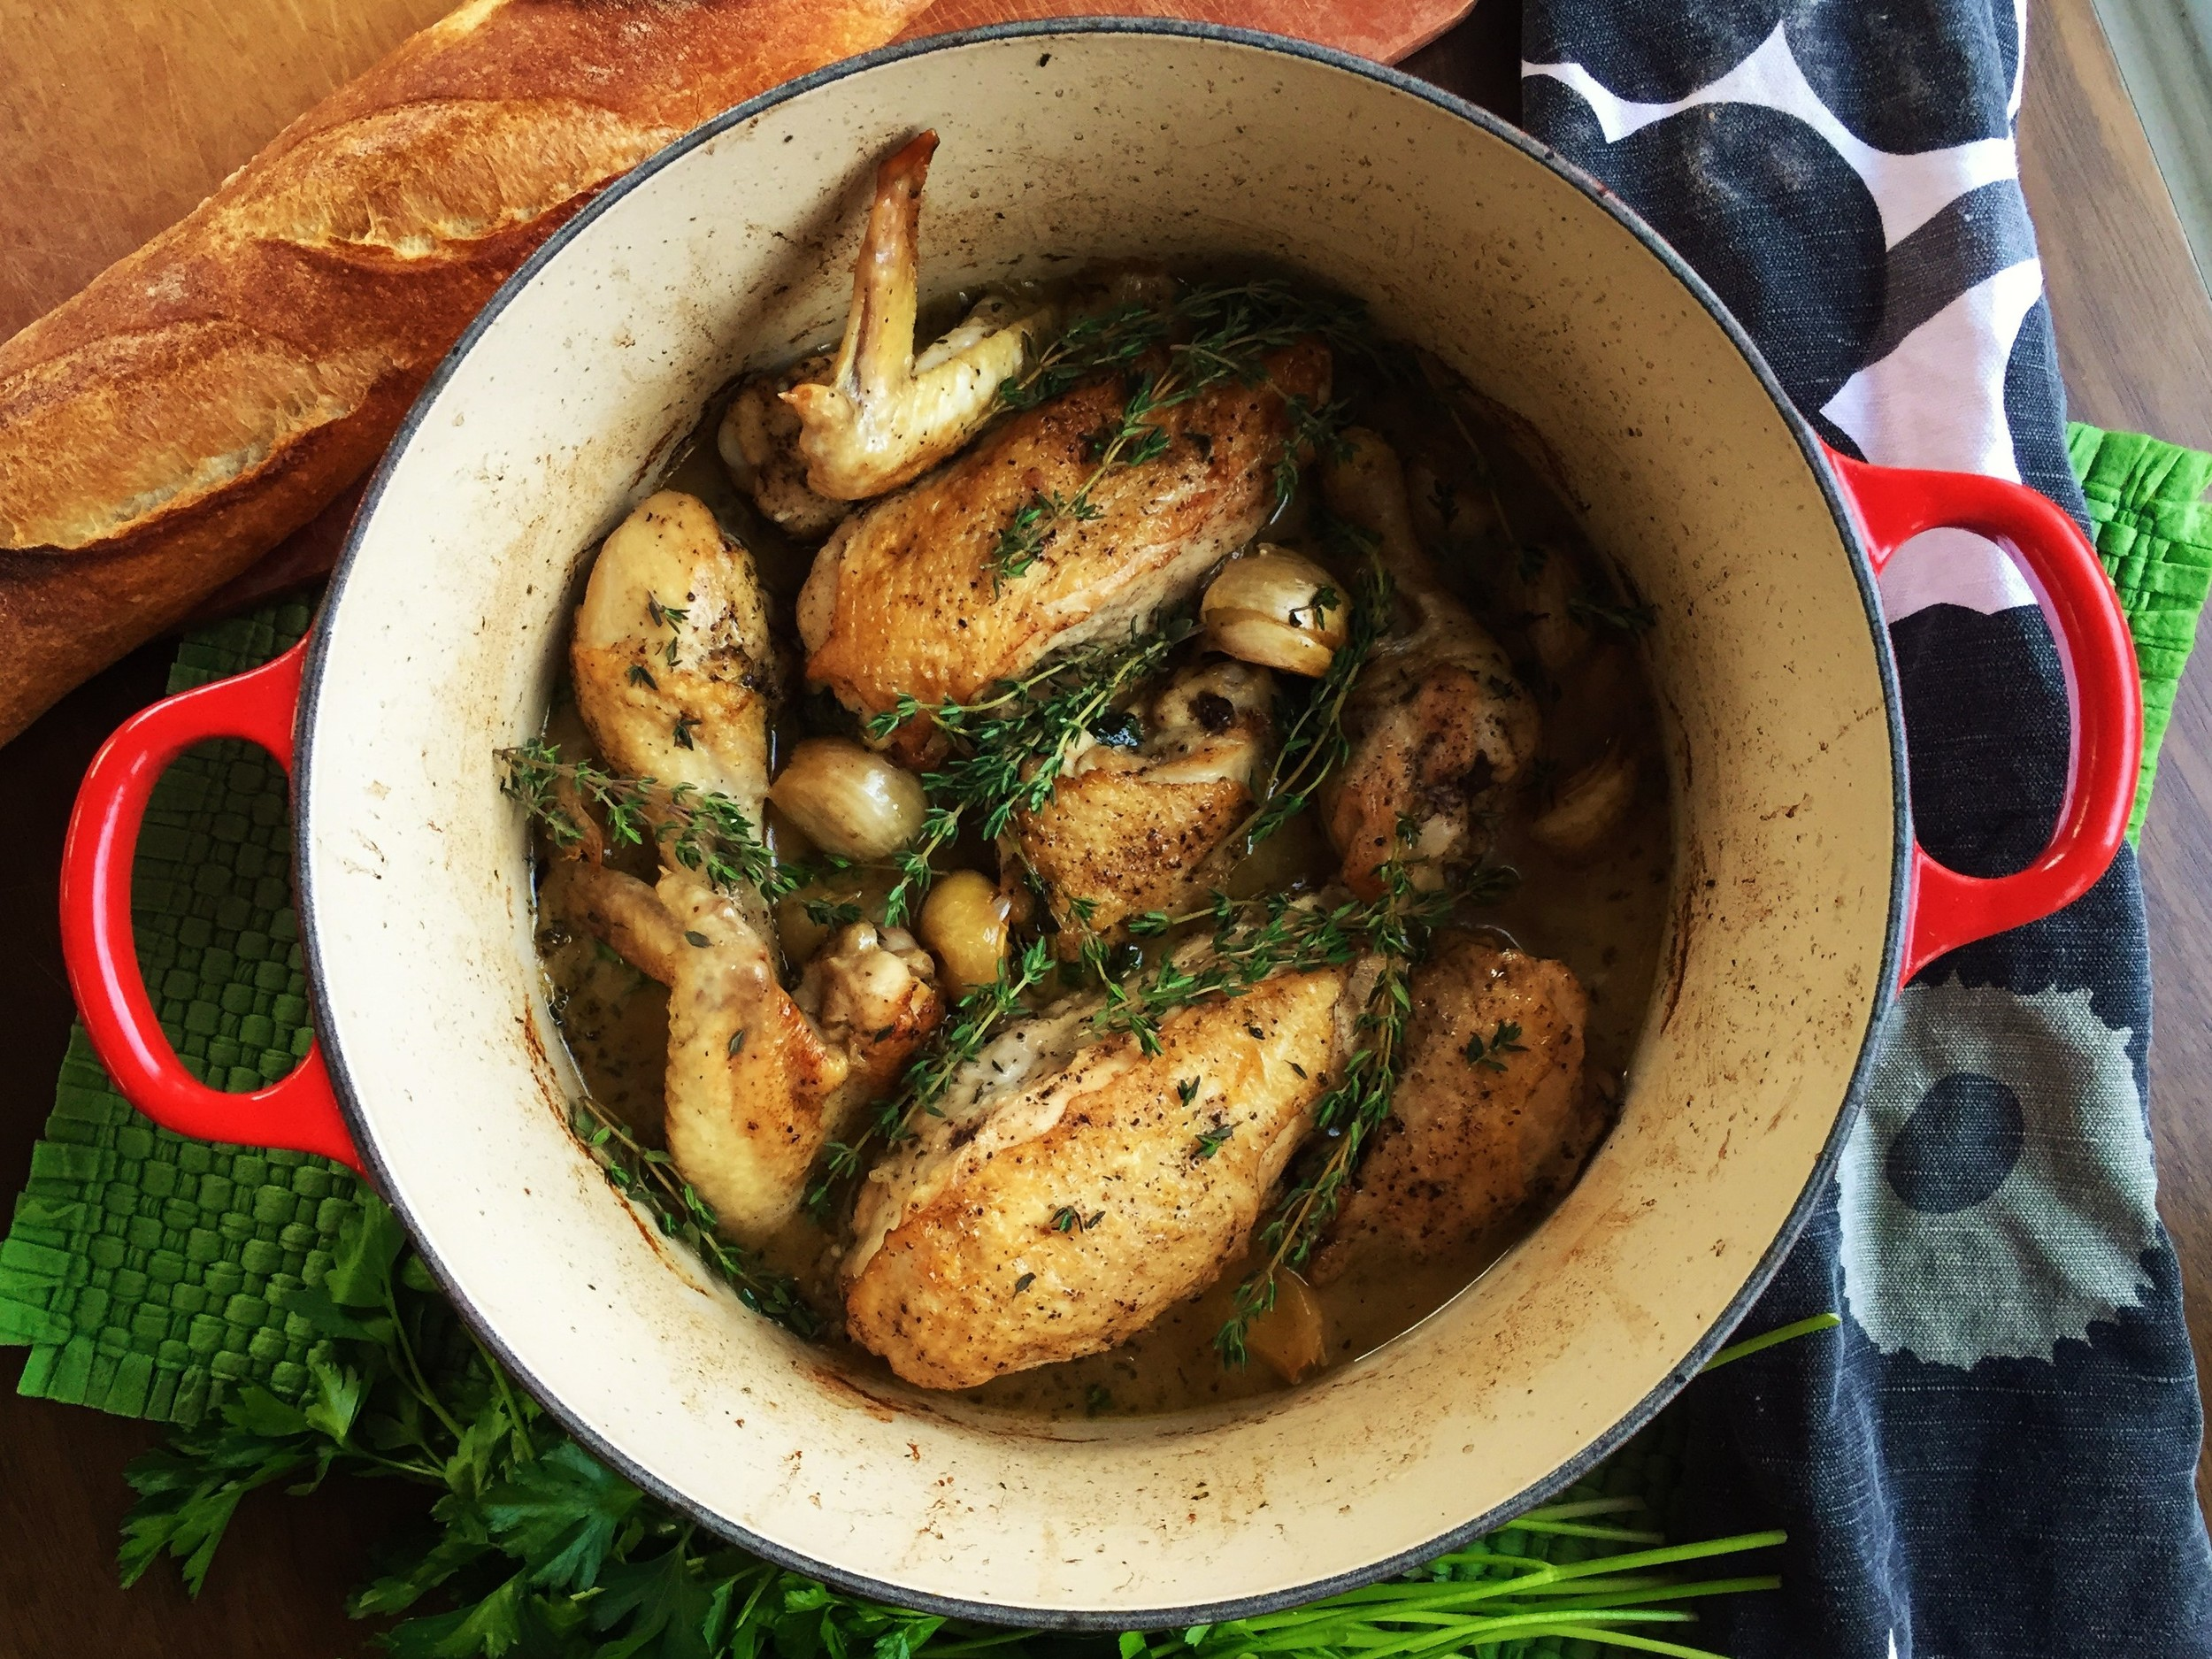 Our recipe this week -  Chicken with 40 Cloves of Garlic  - takes a quintessentially French approach to chicken. With astoundingly delicious results.